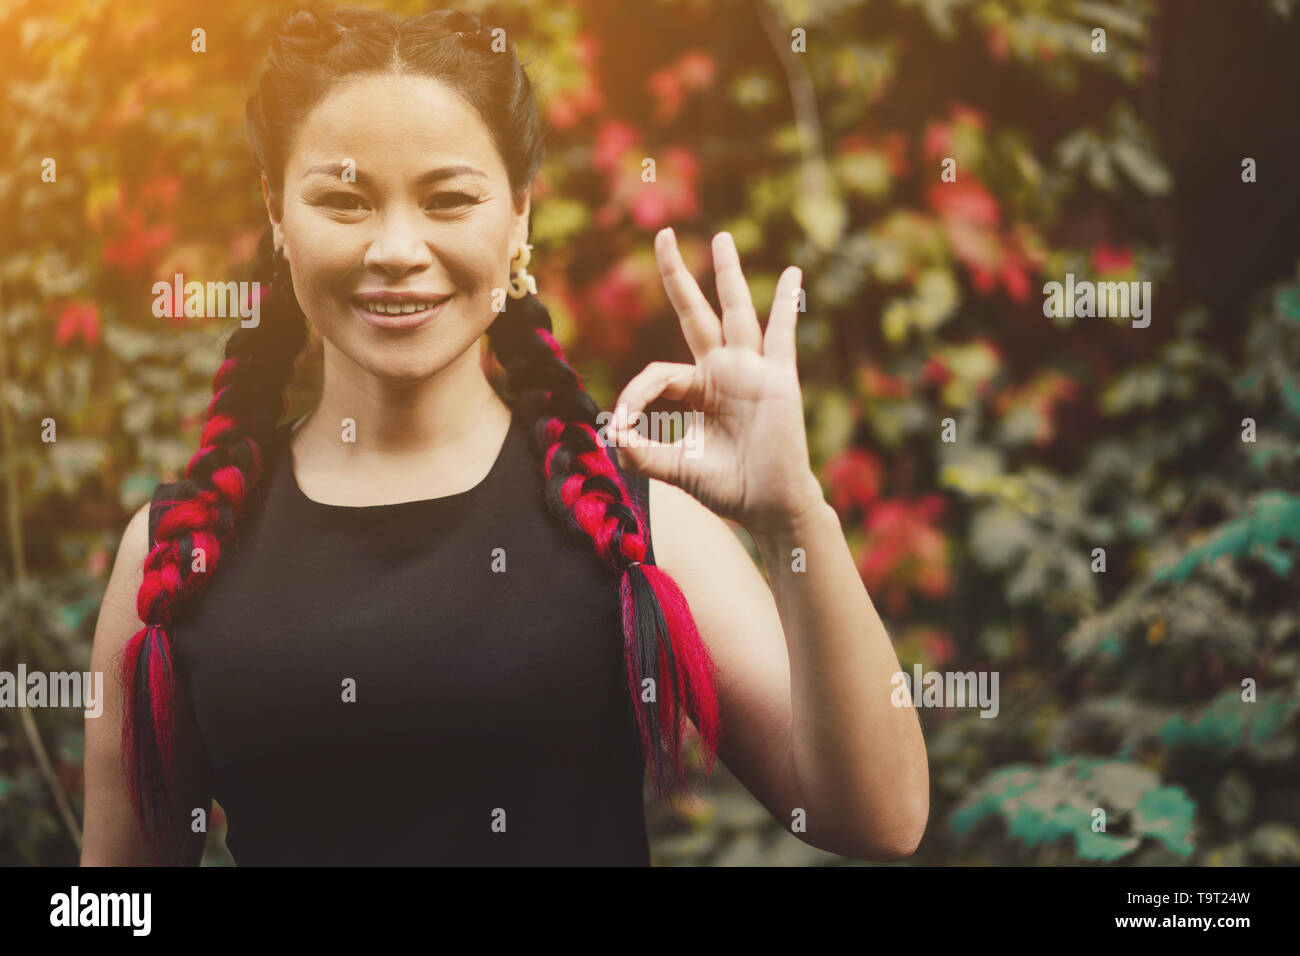 Okay Gesture by Positive Smiling Asian Female. Happy Mature Asian Woman on Summer Nature Background. Positive Lifestyl e Shot. - Stock Image